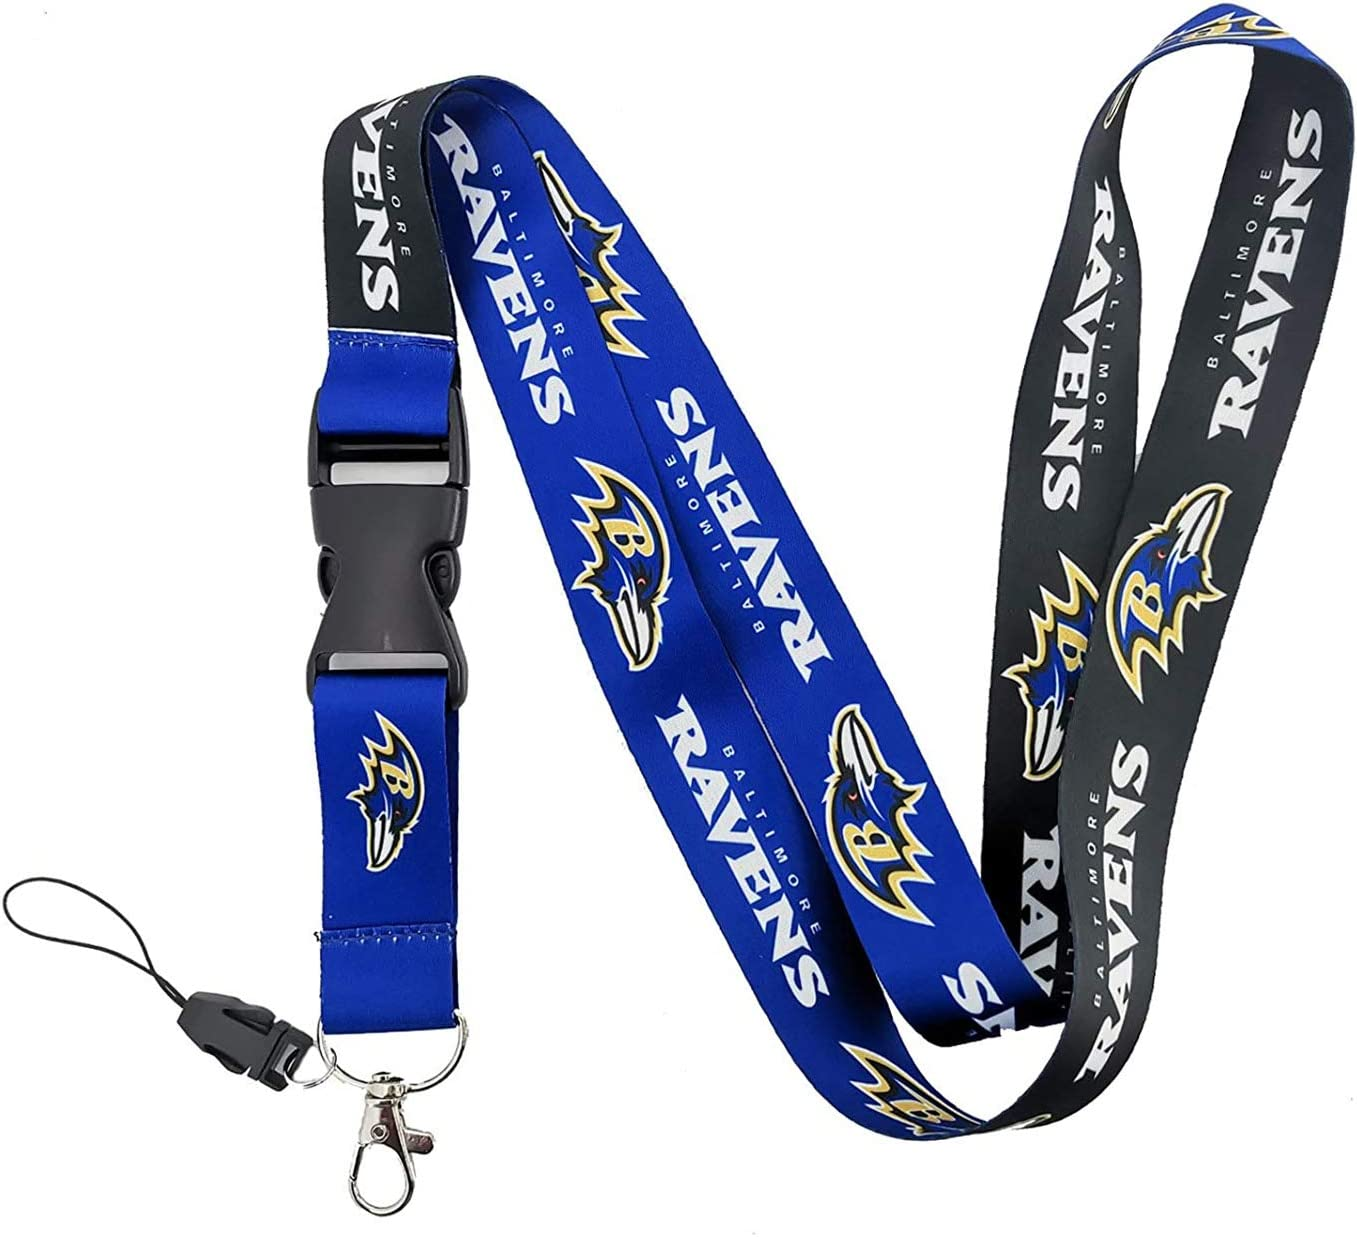 REP Your Team! ILNYXMM Football Fans Keychain Lanyard with Detachable Buckle